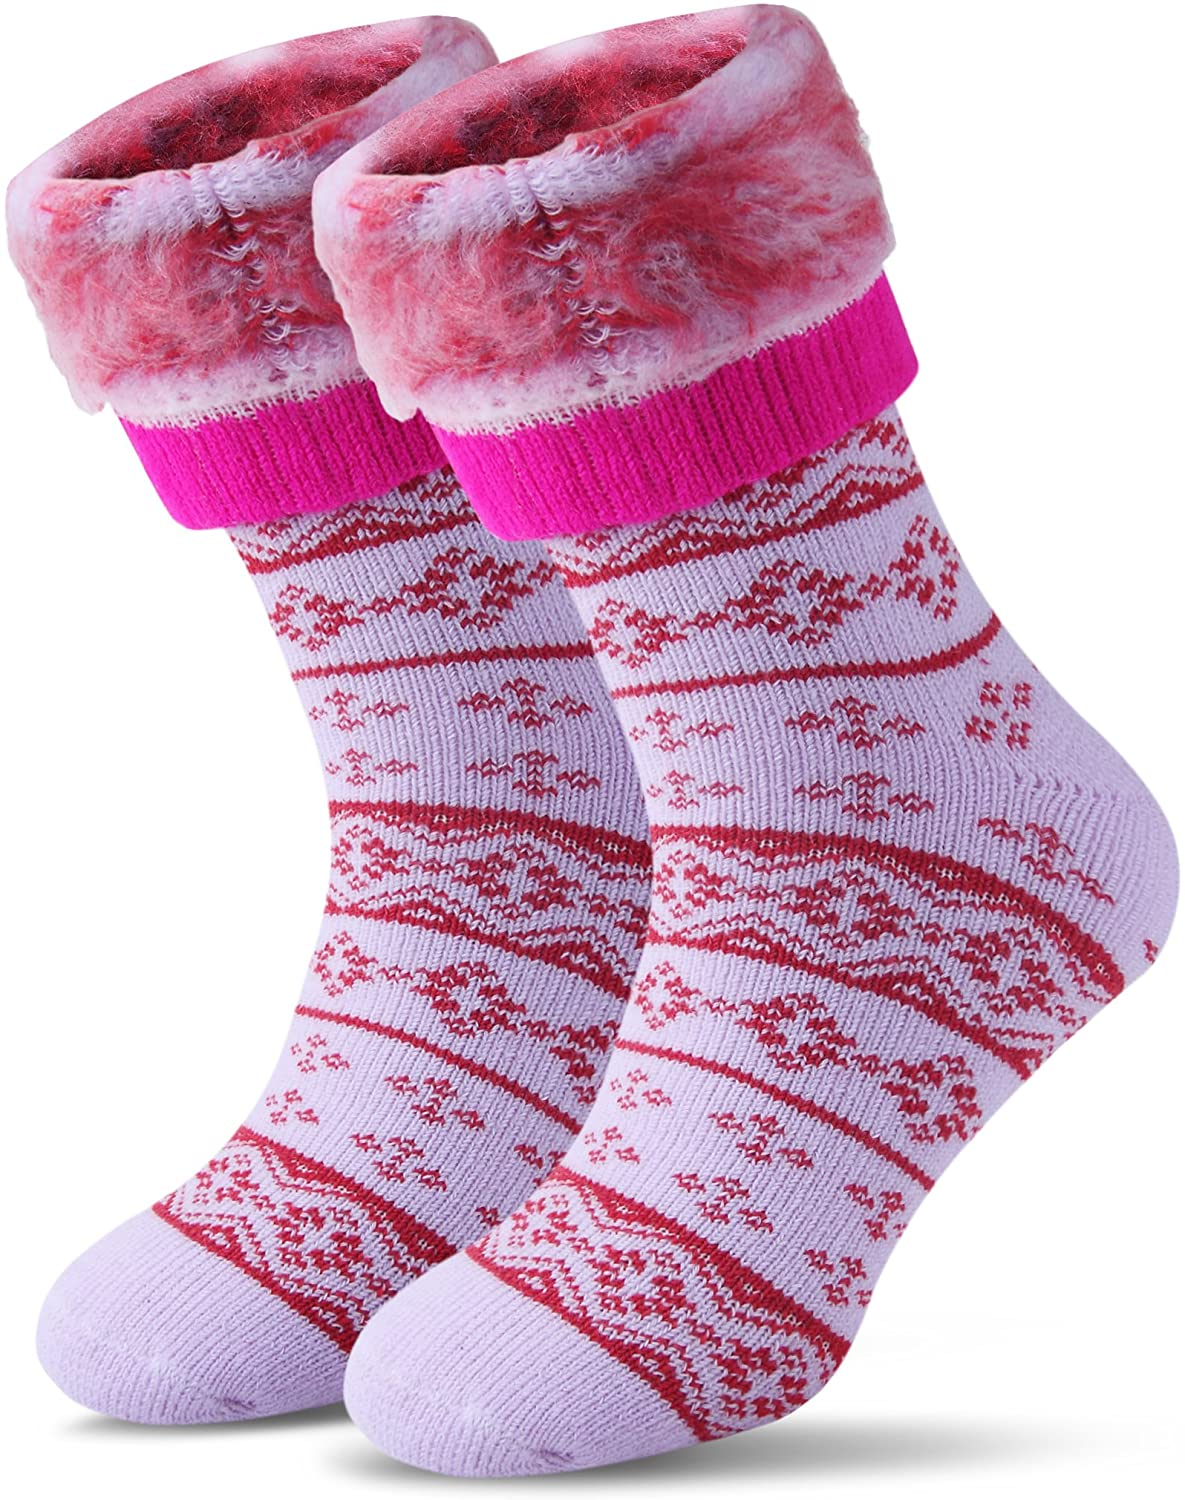 Womens Men Winter Warm Wool Pile Lined Insulated Thermals Socks Thick Boots Heat Socks Cold Weather